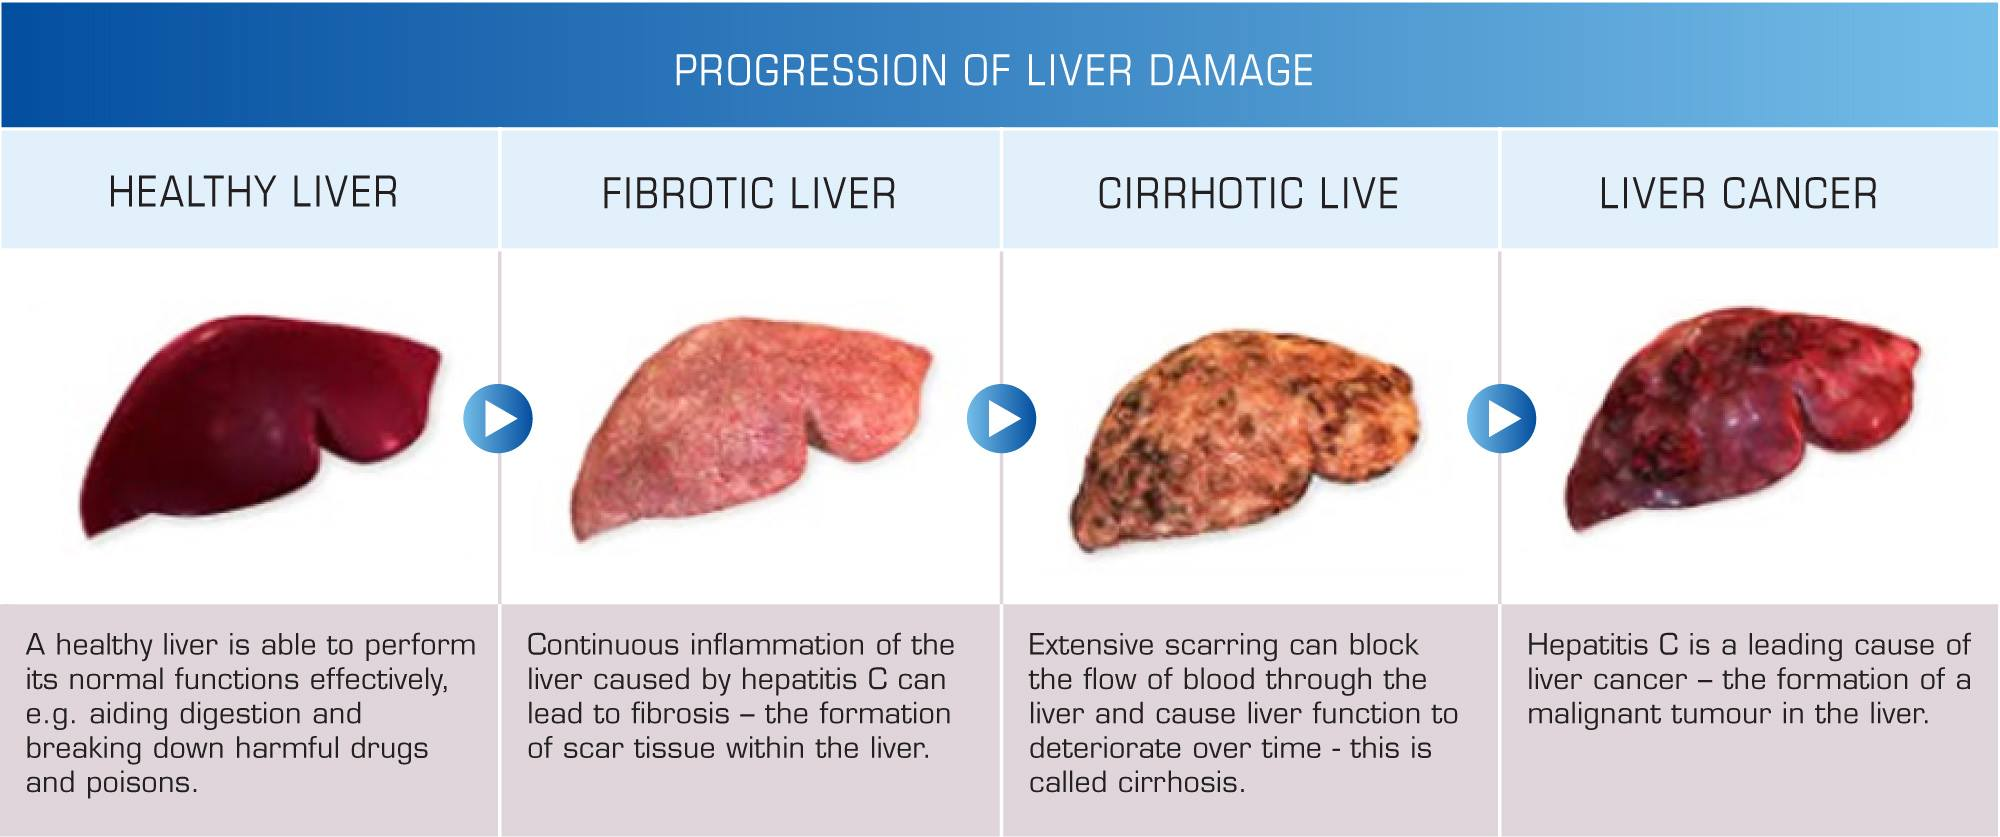 liver cirrhosis curing in uctc, Human Body